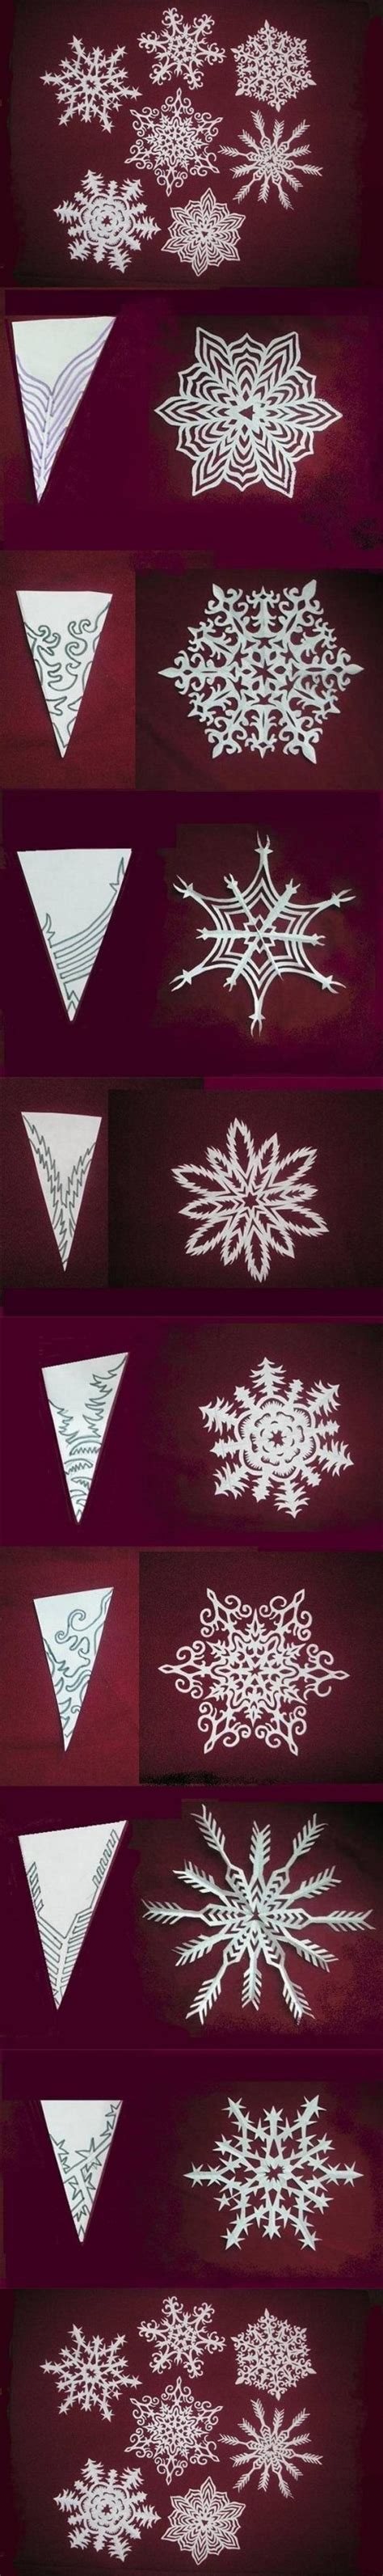 paper snowflake crafts how to make beautiful snowflakes paper craft diy tutorial